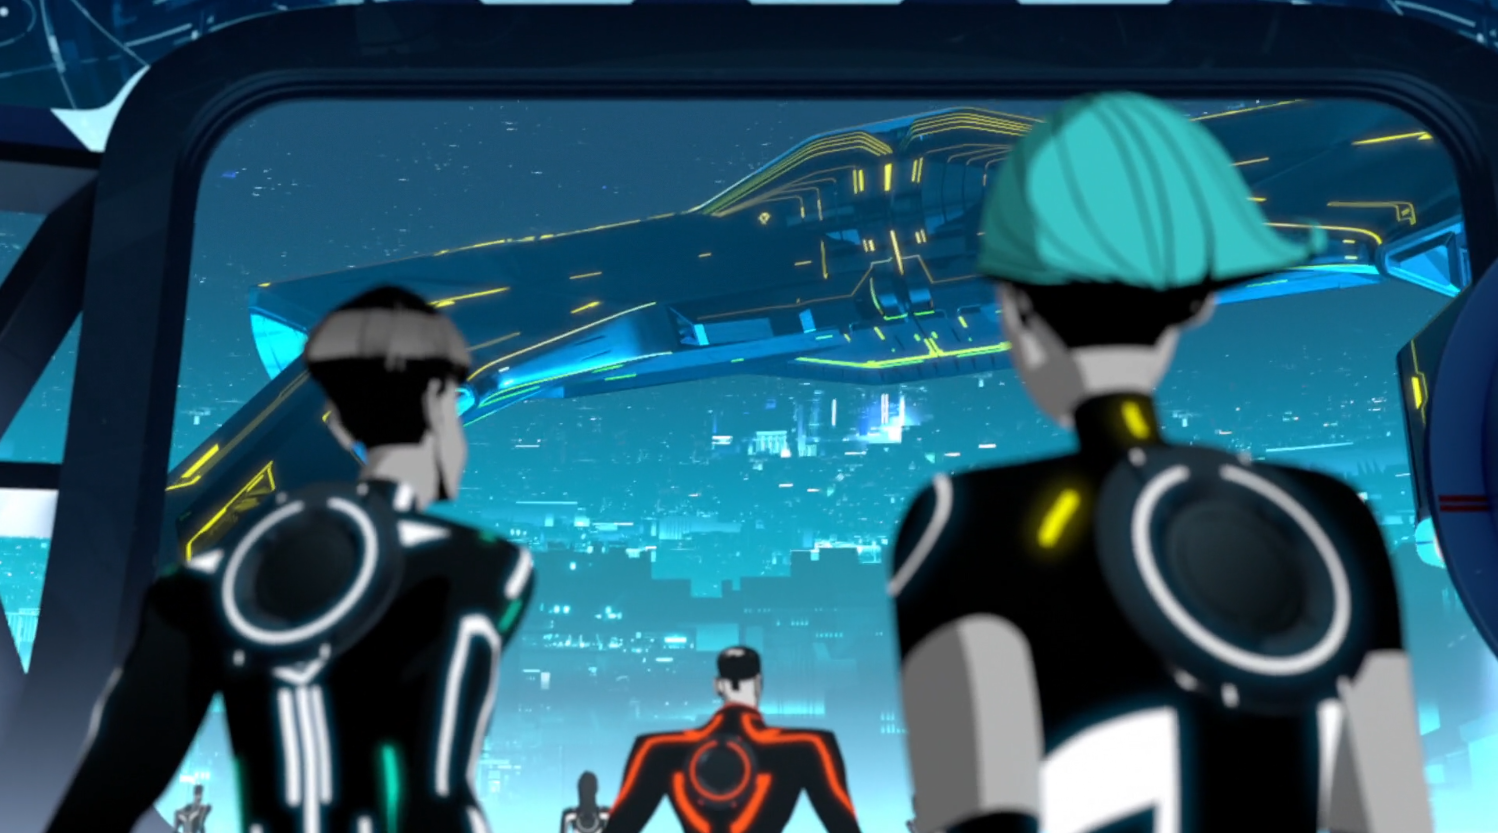 Recognizer crashes near Able's garage - Terminal - Terminal - Tron: Uprising